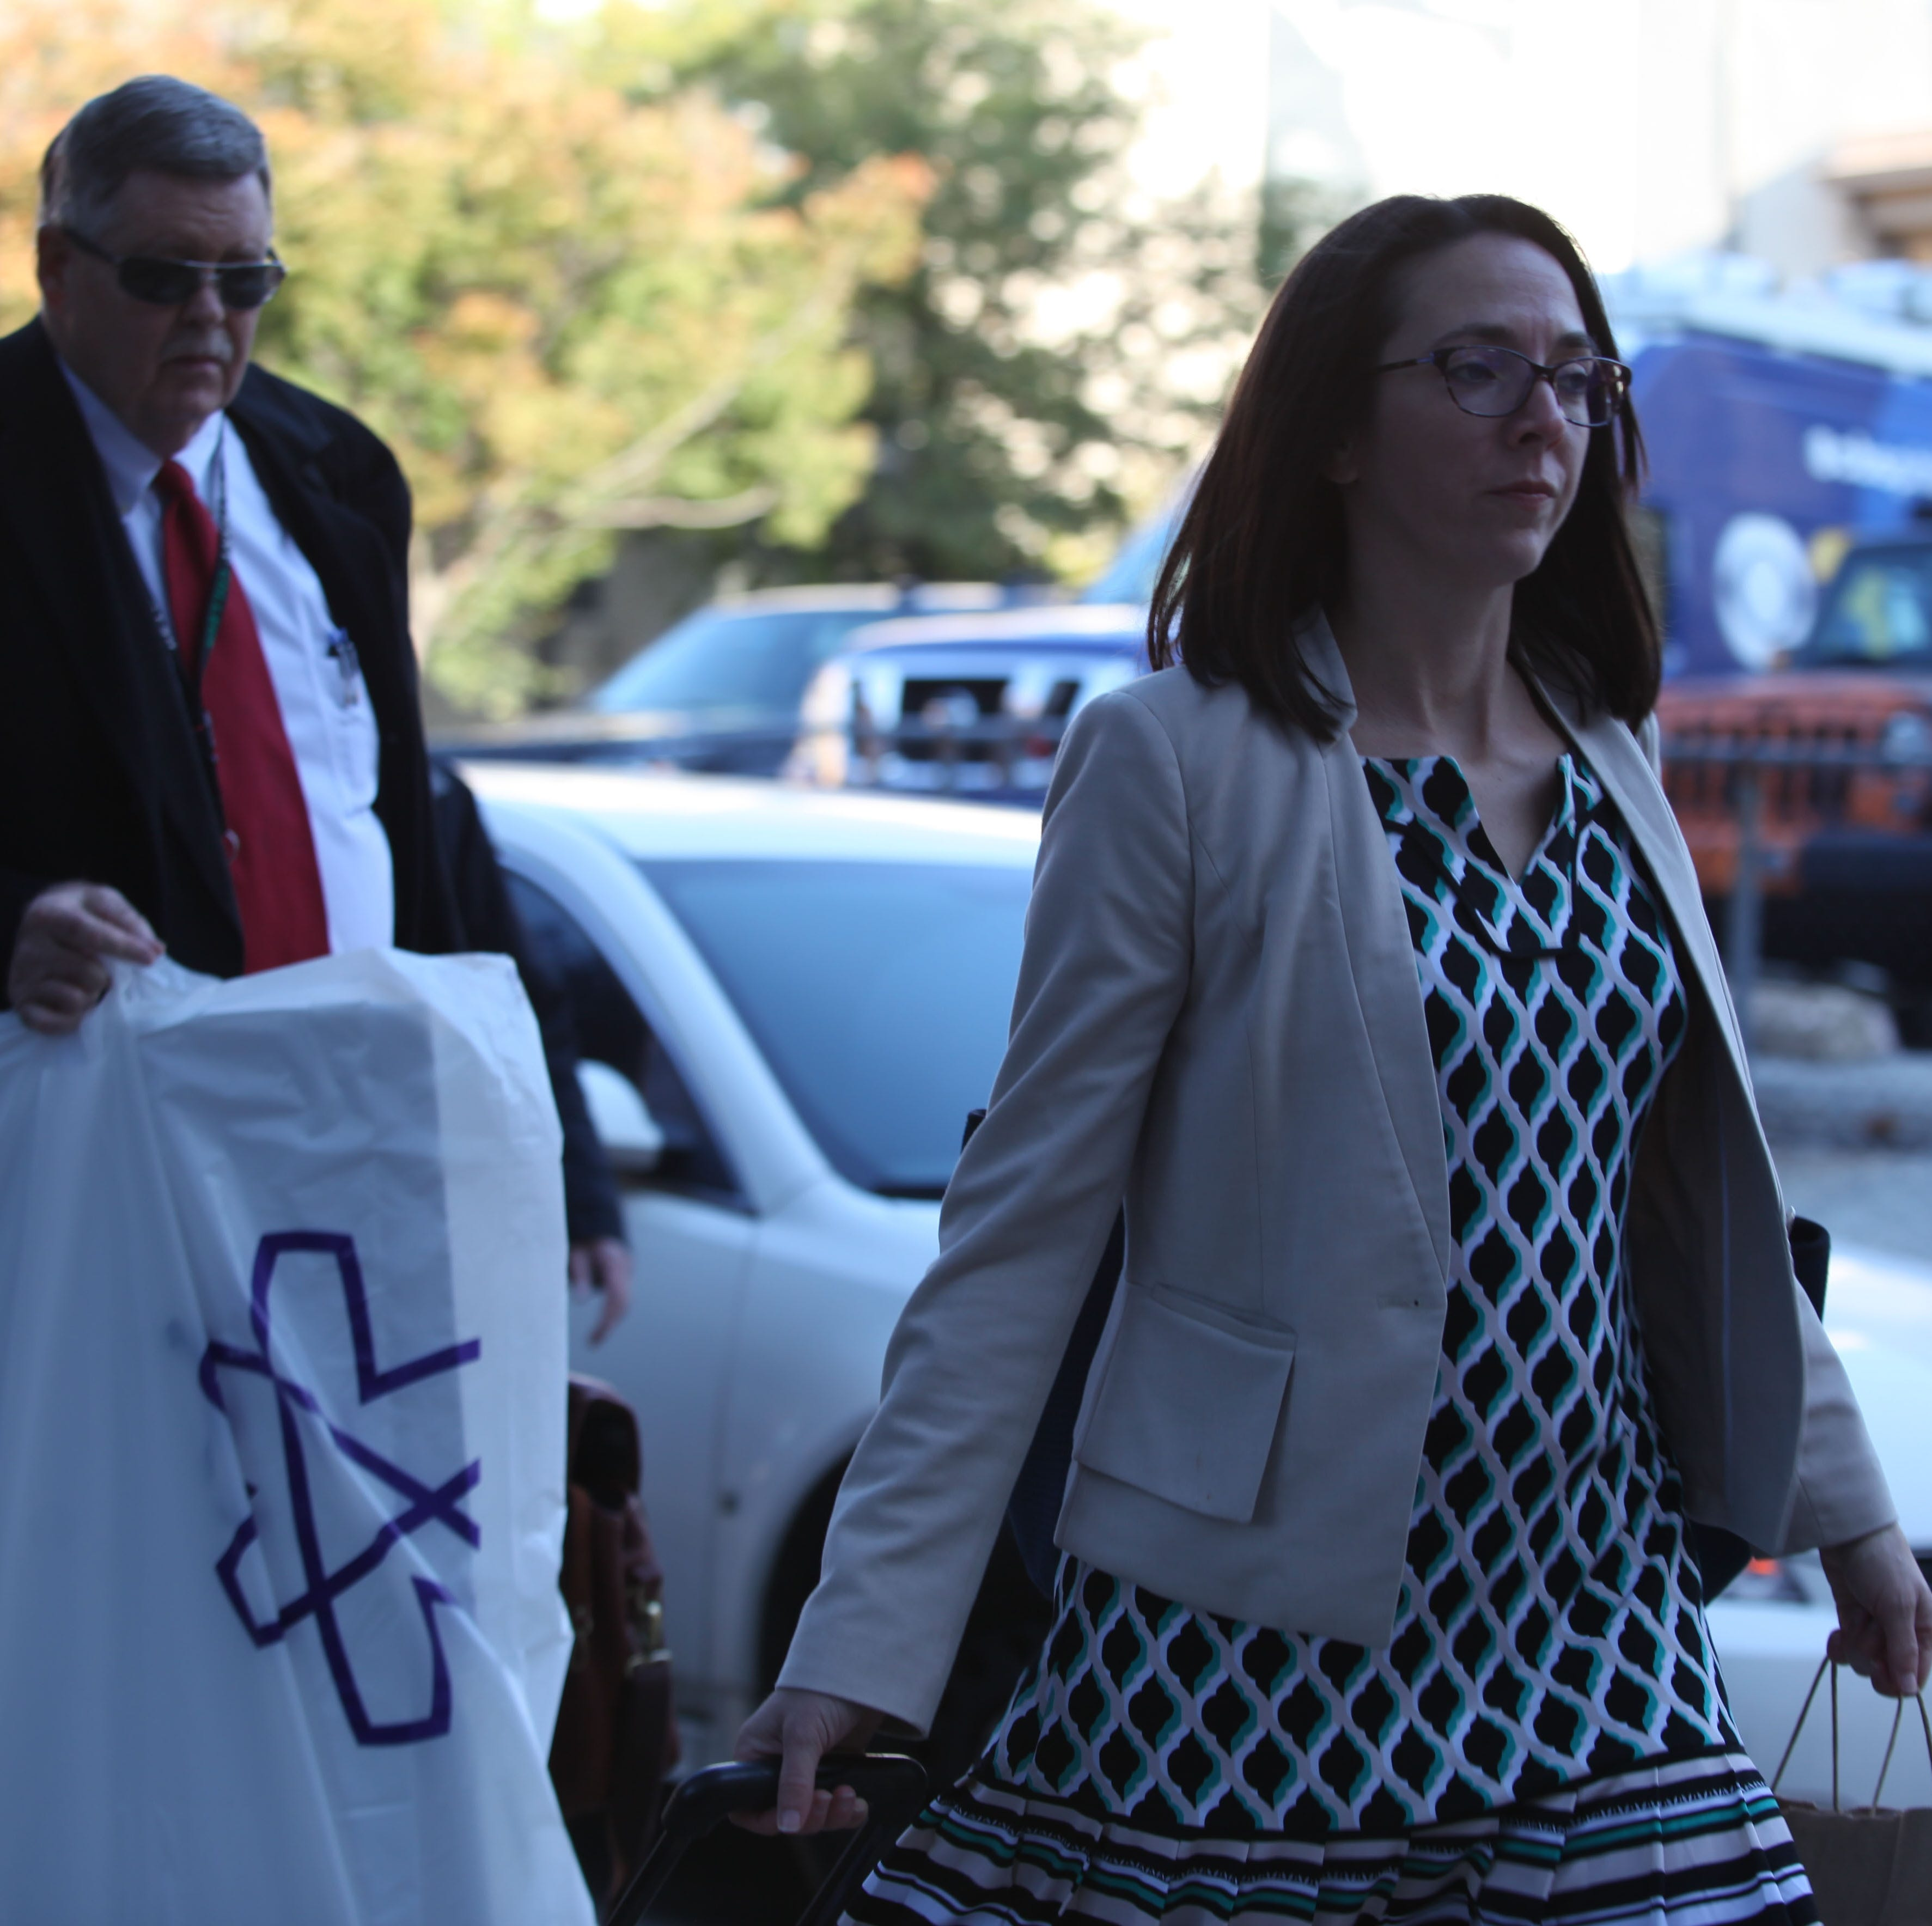 John Downs (left) and Nicole Warner (right), both Deputy Attorney Generals, arrive at the New Castle County Courthouse Monday morning.